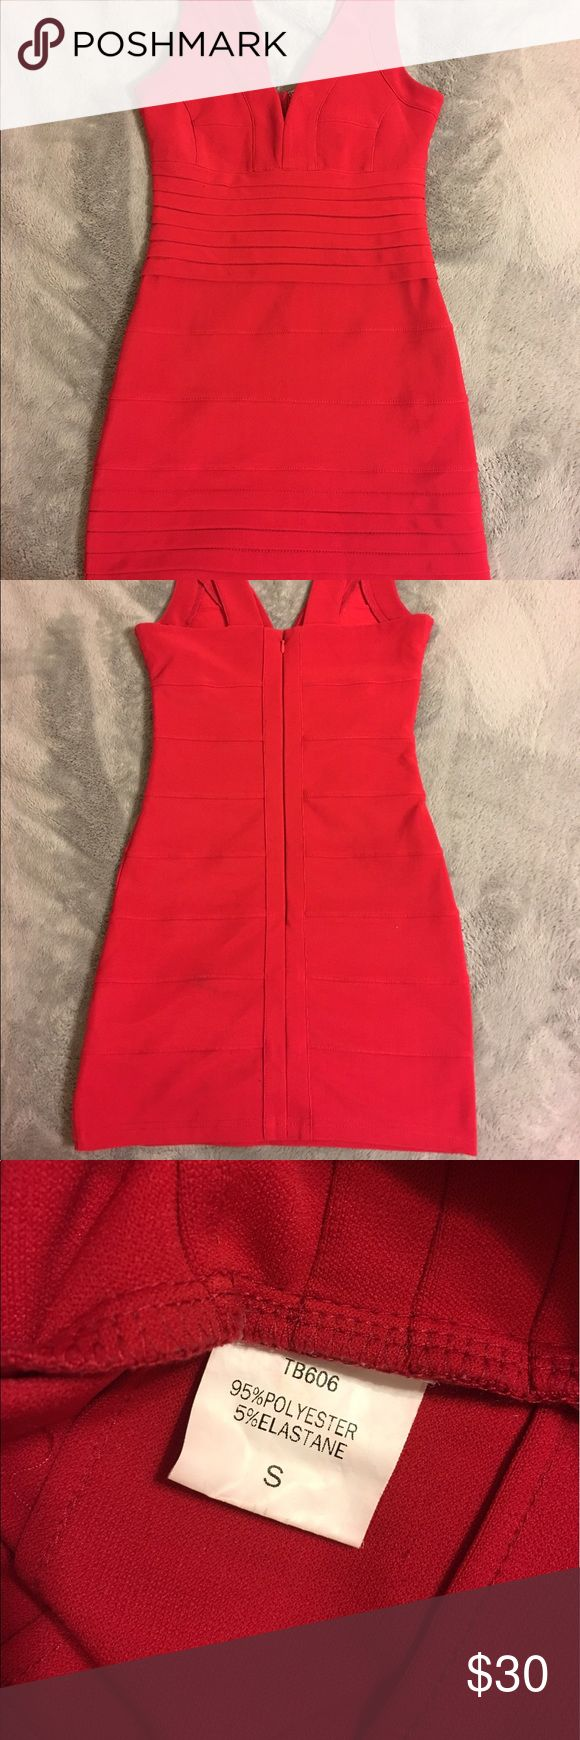 Tobi red bandage dress Bandage dress from Tobi, fits as a small, deep v-neck with thick straps, lightly worn in great condition Tobi Dresses Mini